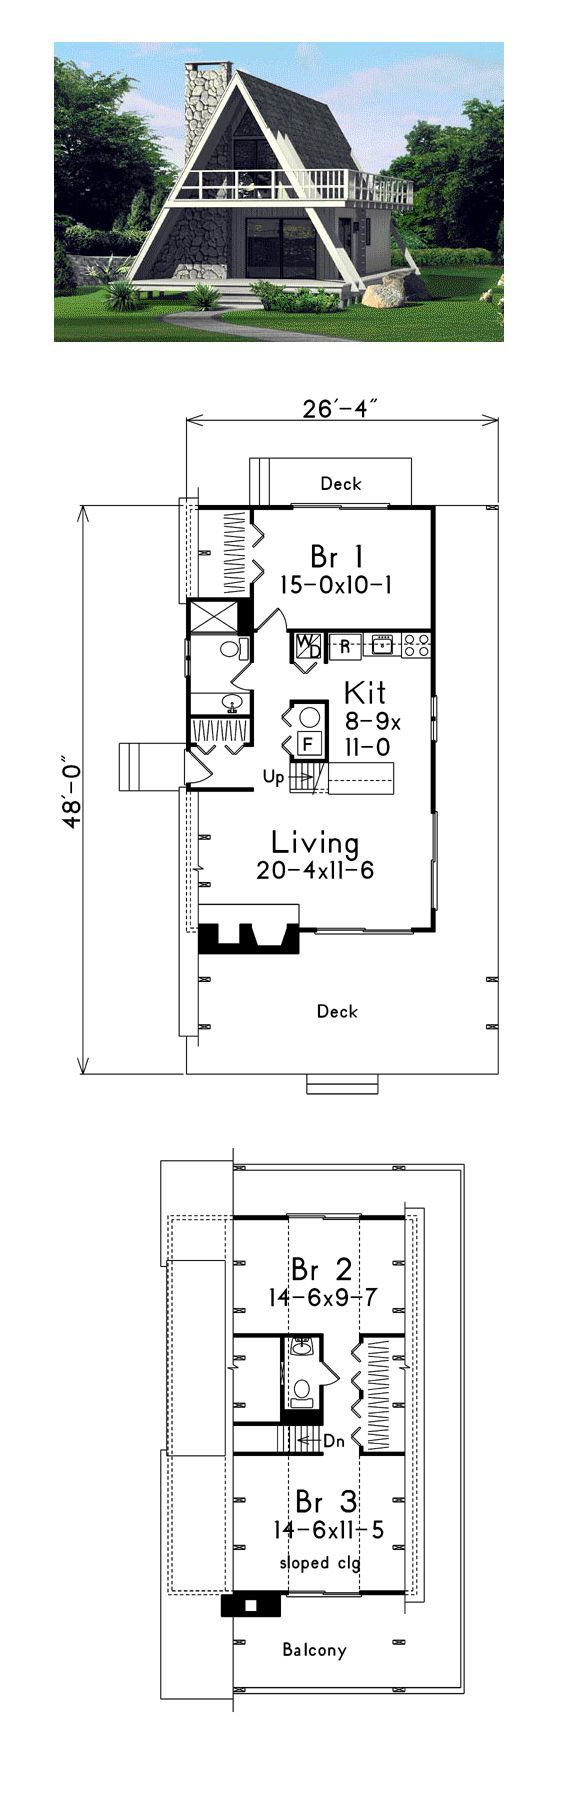 Photo of Retro Style House Plan 86950 with 3 Bed, 2 Bath